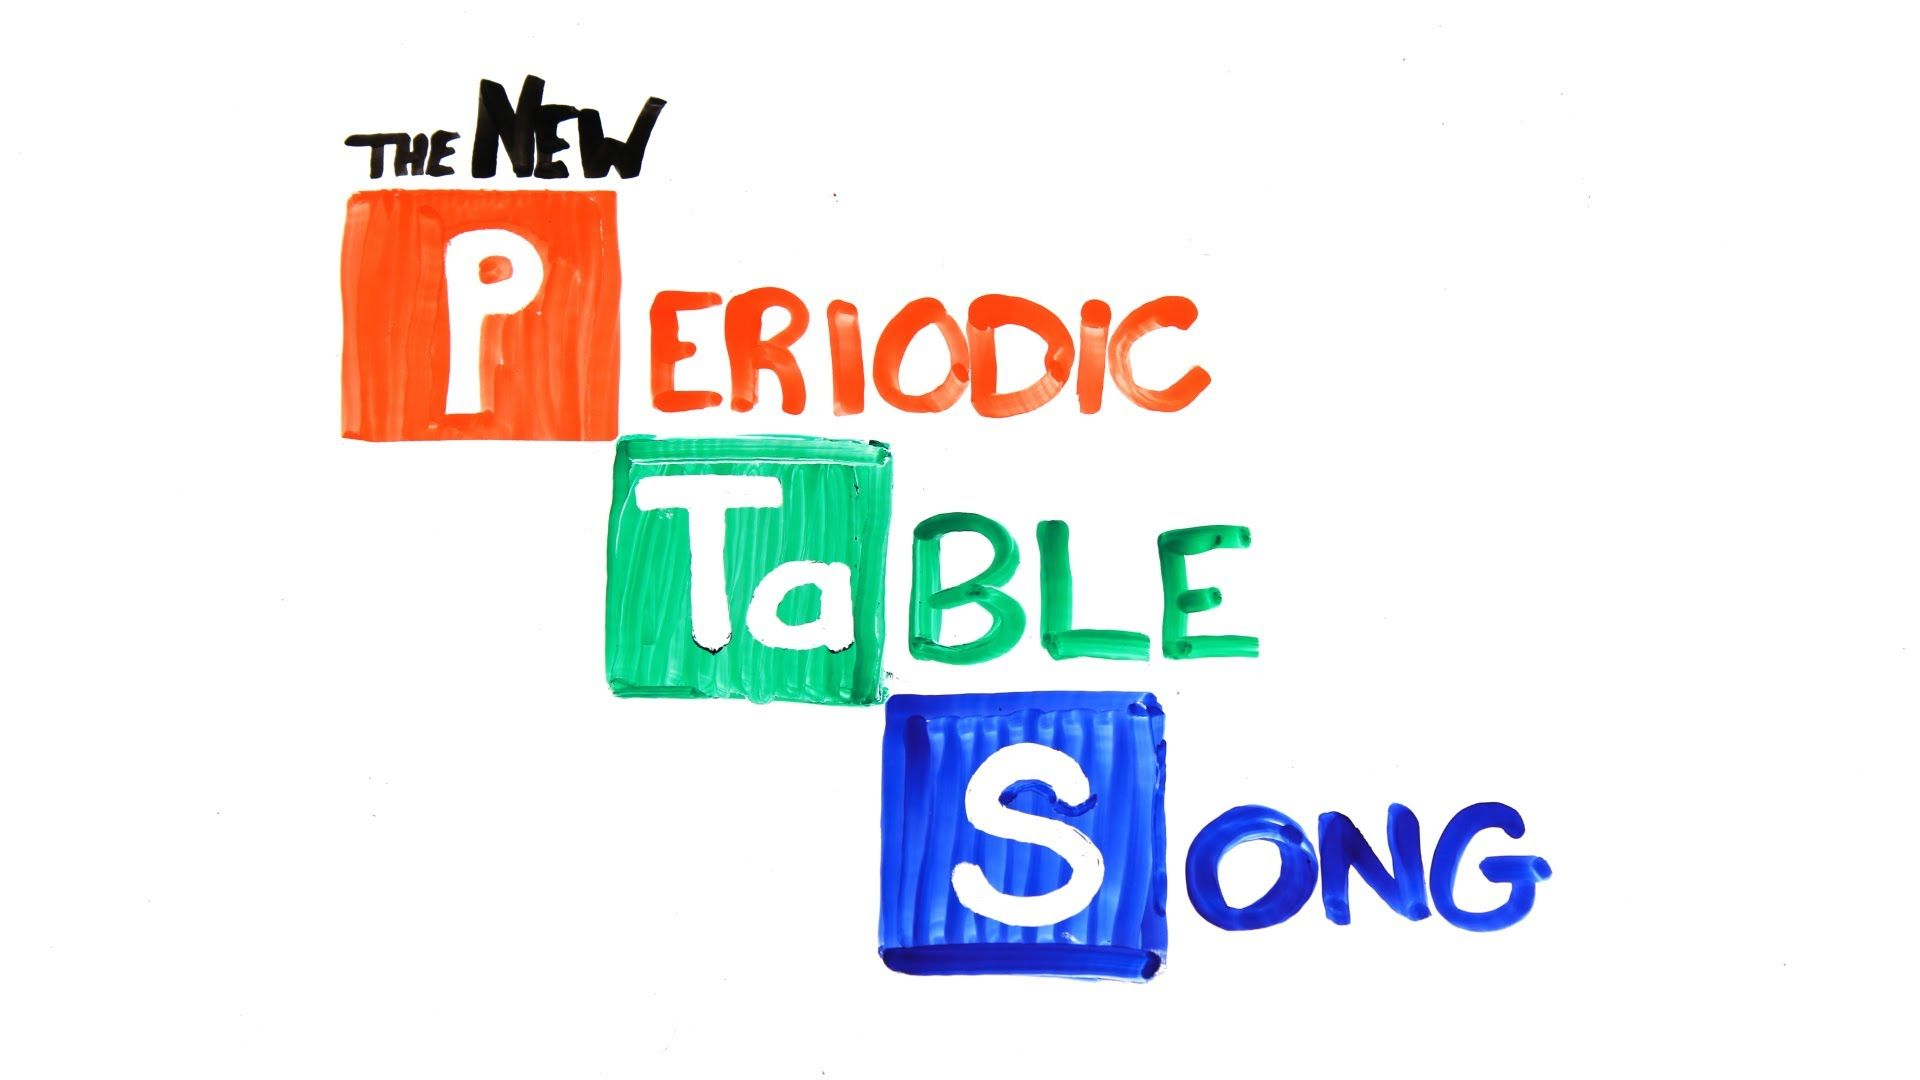 Periodic table song all elements of the periodic chart set to music most have seenheard the periodic table song by tom lehrer here is a new one from asap science recently added it to my science video page have a look urtaz Choice Image